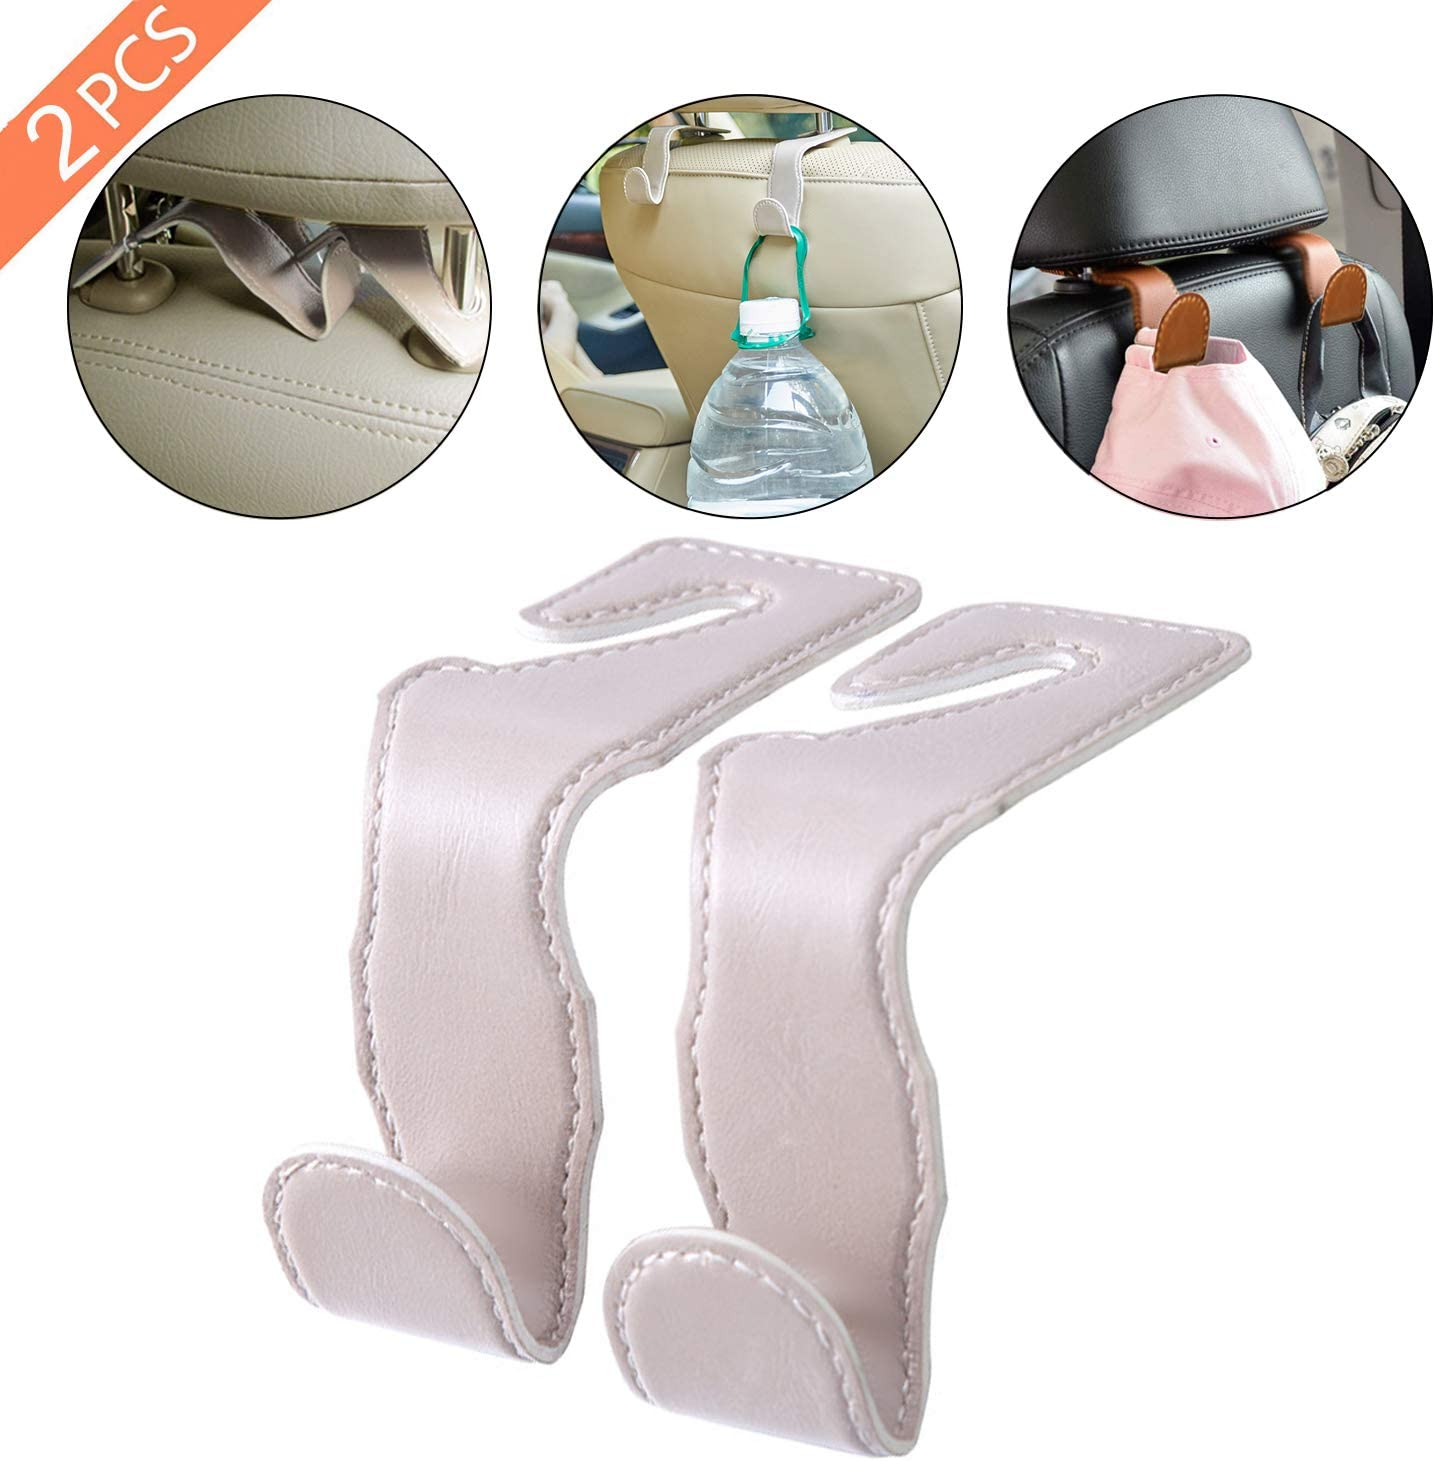 XBY Superior Leather /& Stainless Steel Car Vehicle Headrest Hooks with 44 LB Load Capacity Durable Back Seat Hangers Portable Organizer Holder for Handbag Purse Cloth Grocery white 2 Packs